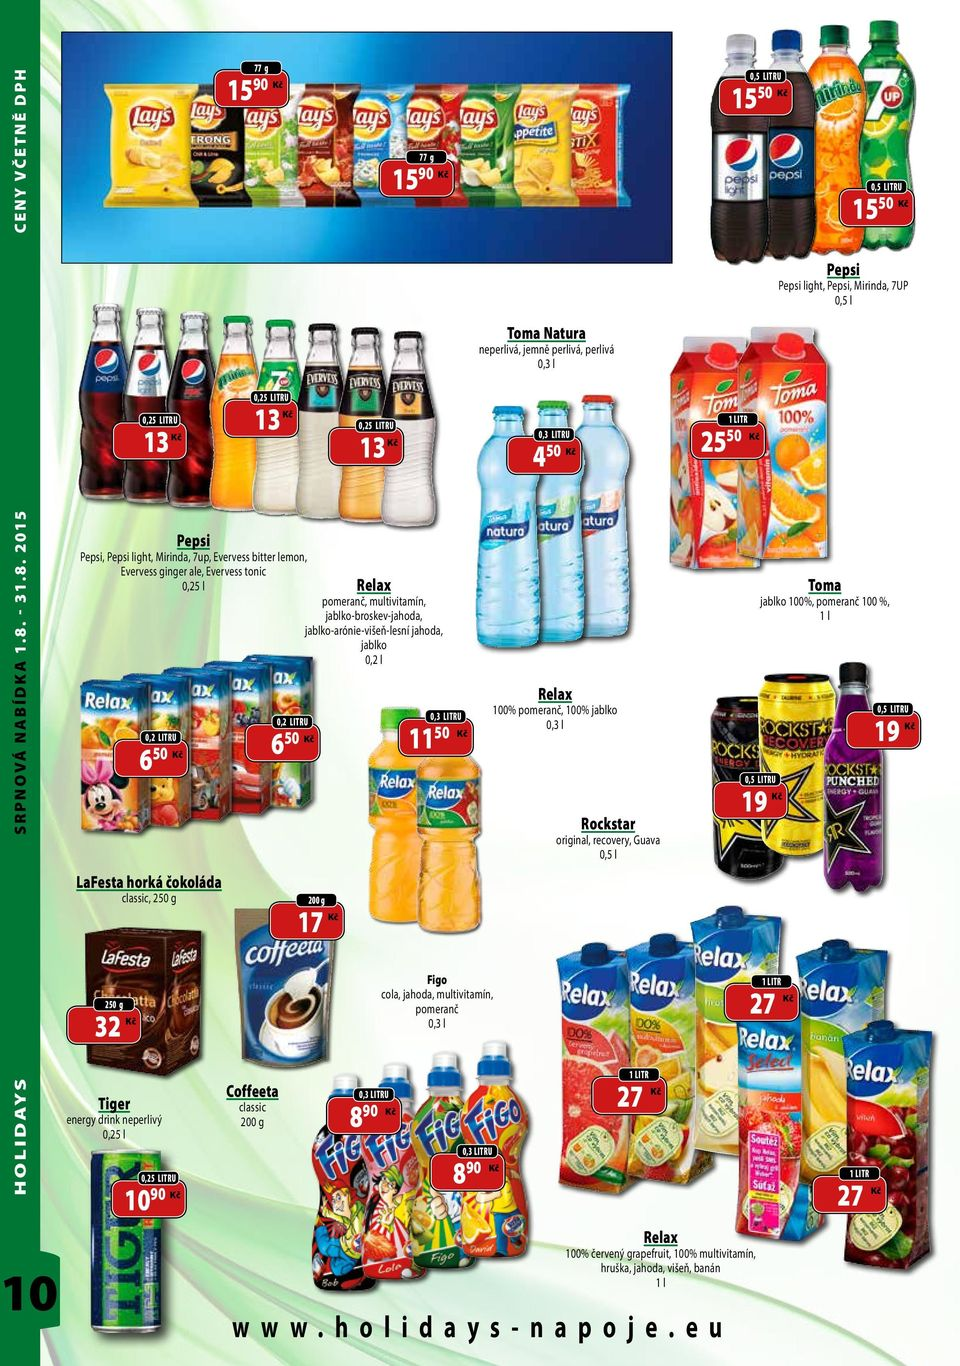 2015 CENY VČETNĚ DPH 0,25 LITRU 13 77 g 15 90 0,25 LITRU 13 0,25 LITRU 13 77 g 15 90 Pepsi Pepsi, Pepsi light, Mirinda, 7up, Evervess bitter lemon, Evervess ginger ale, Evervess tonic 0,25 l Relax